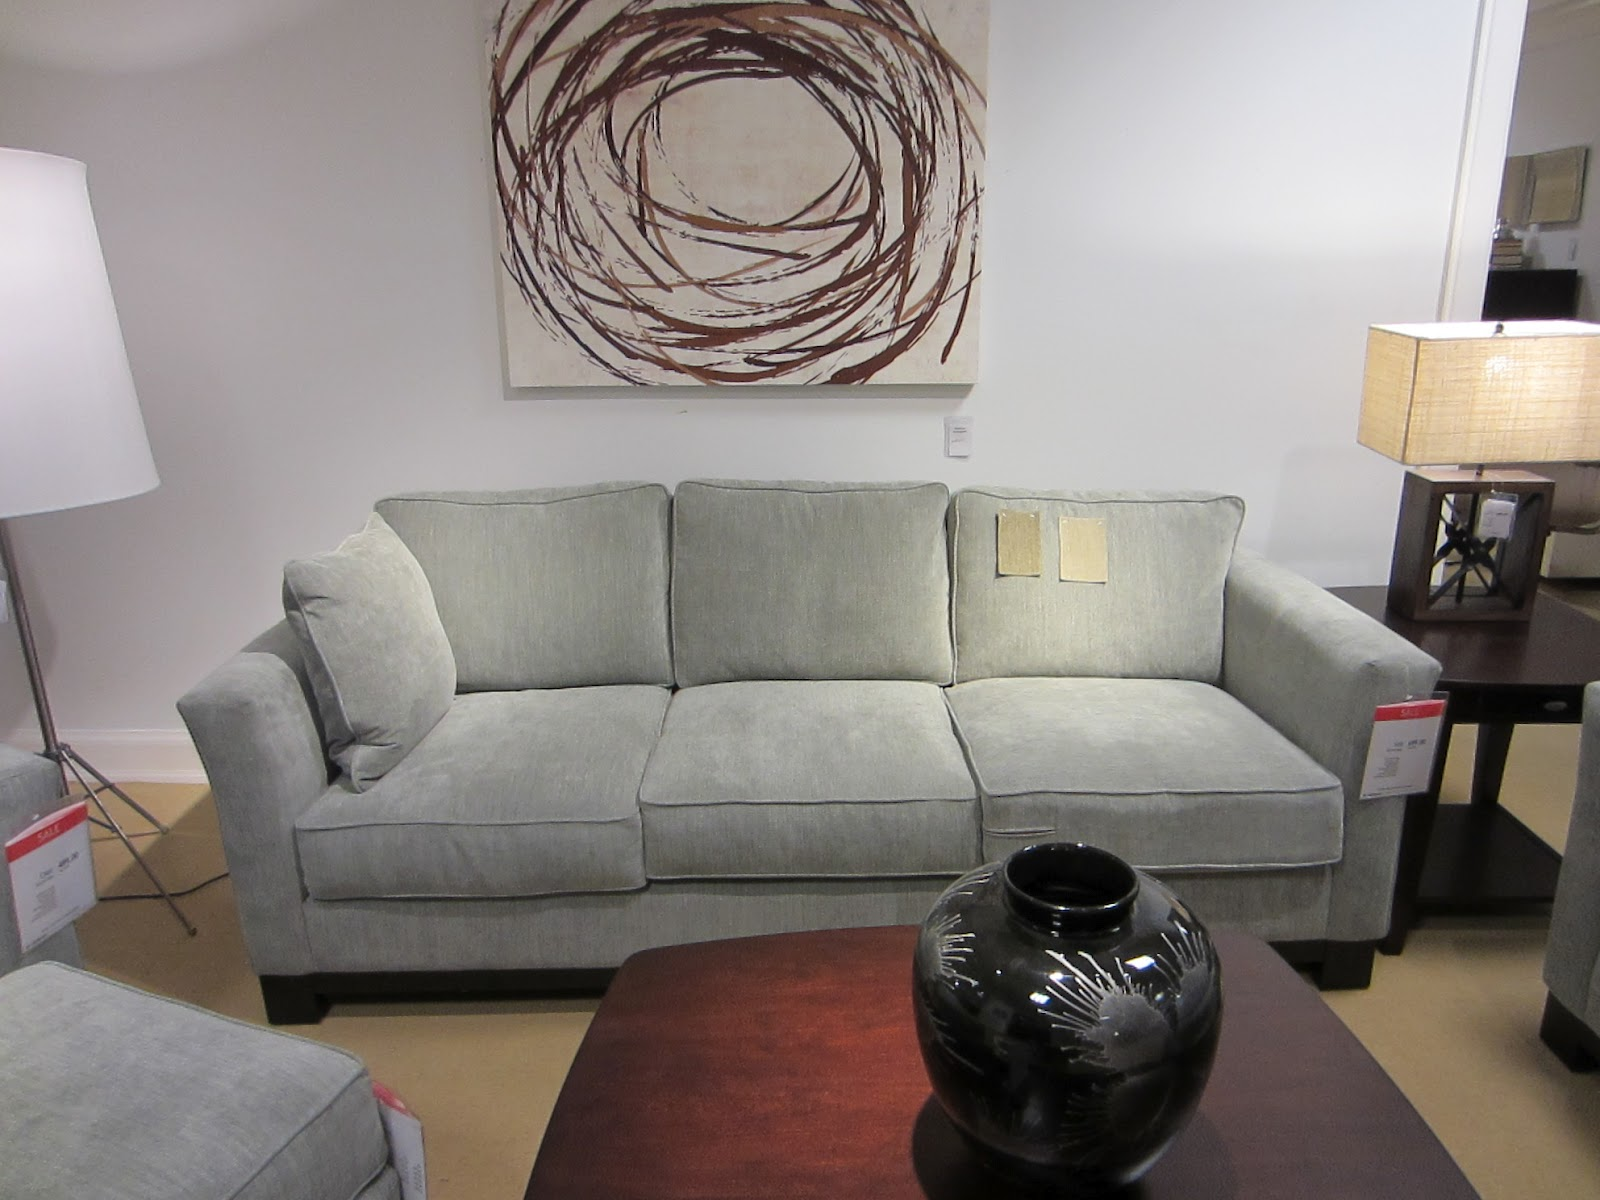 Apartment Furniture – We Found Our Couch The Splendid Guide